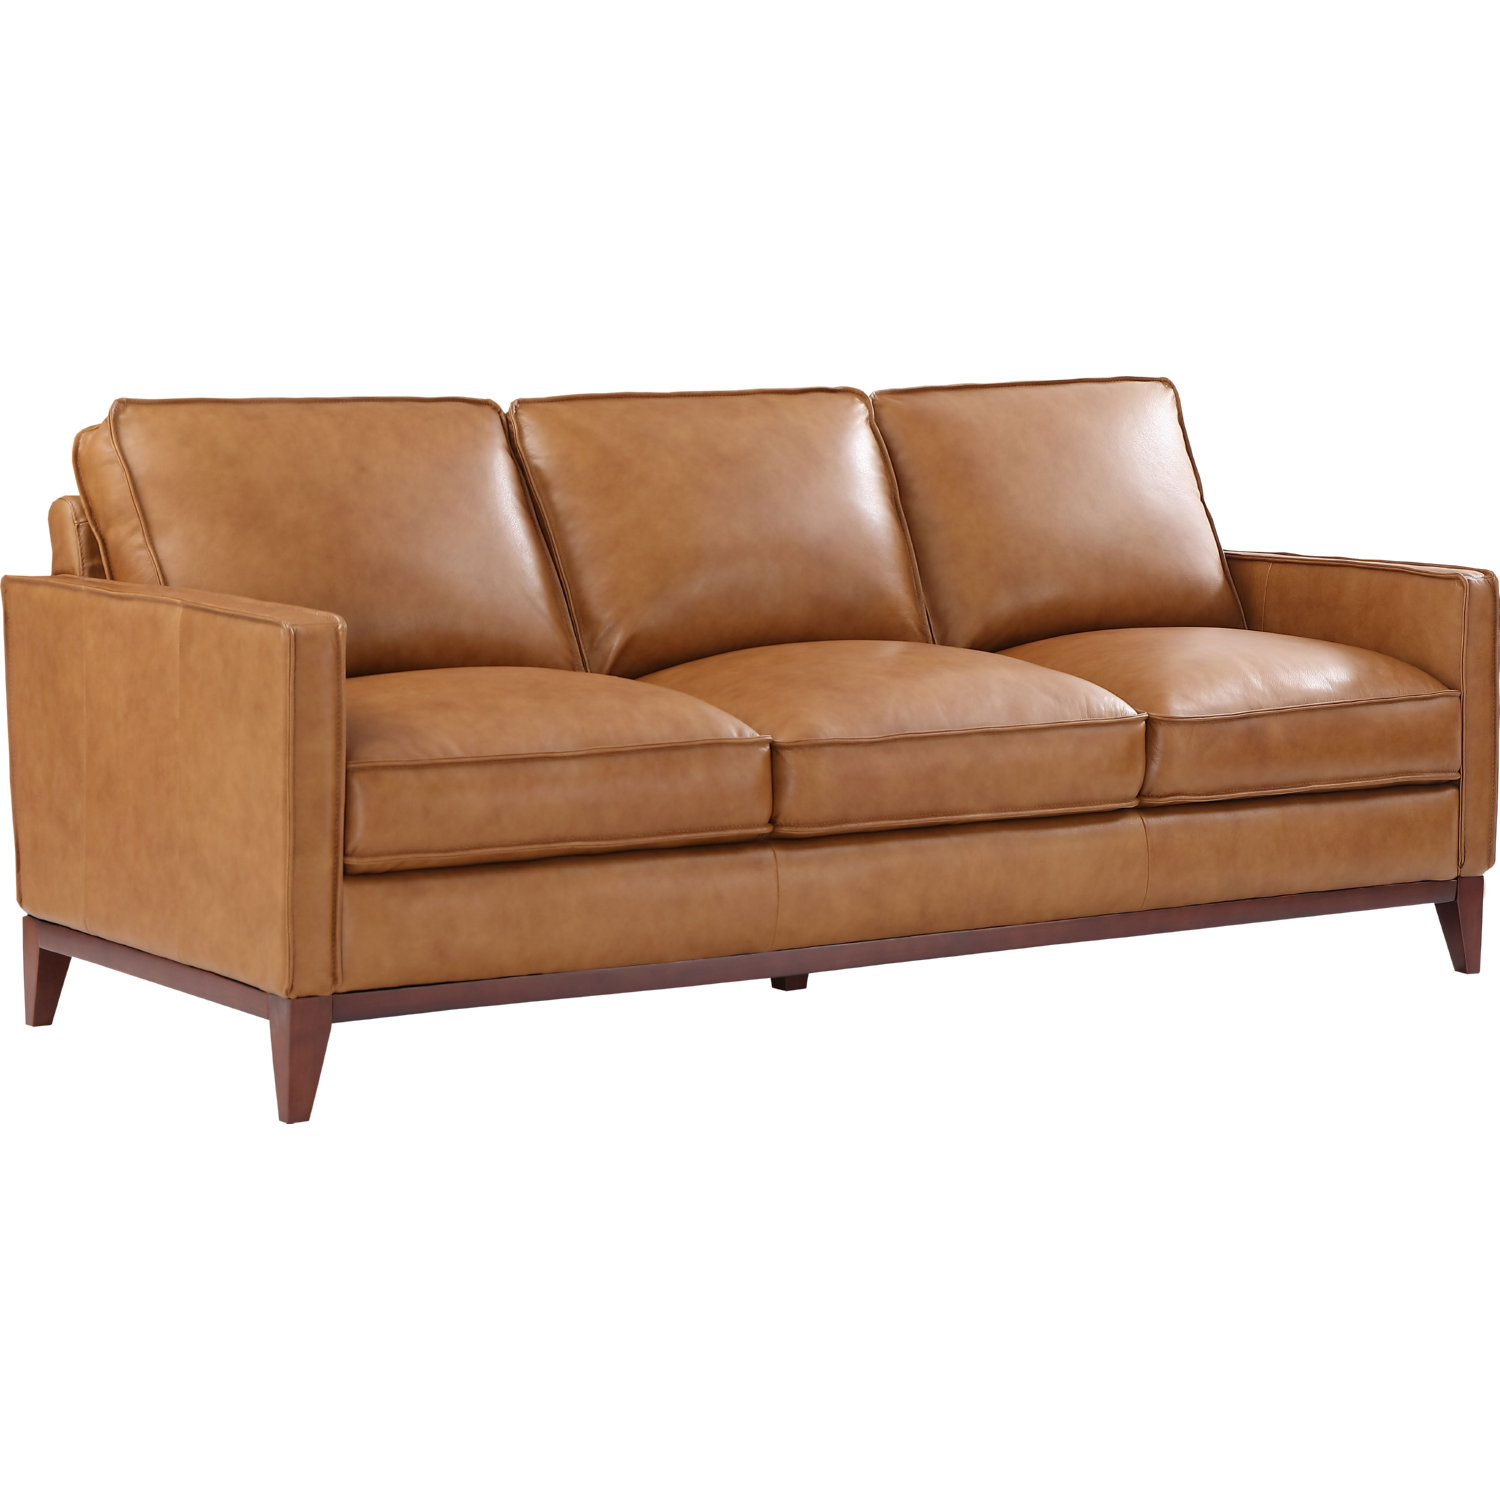 Leather Italia Newport Sofa in Camel